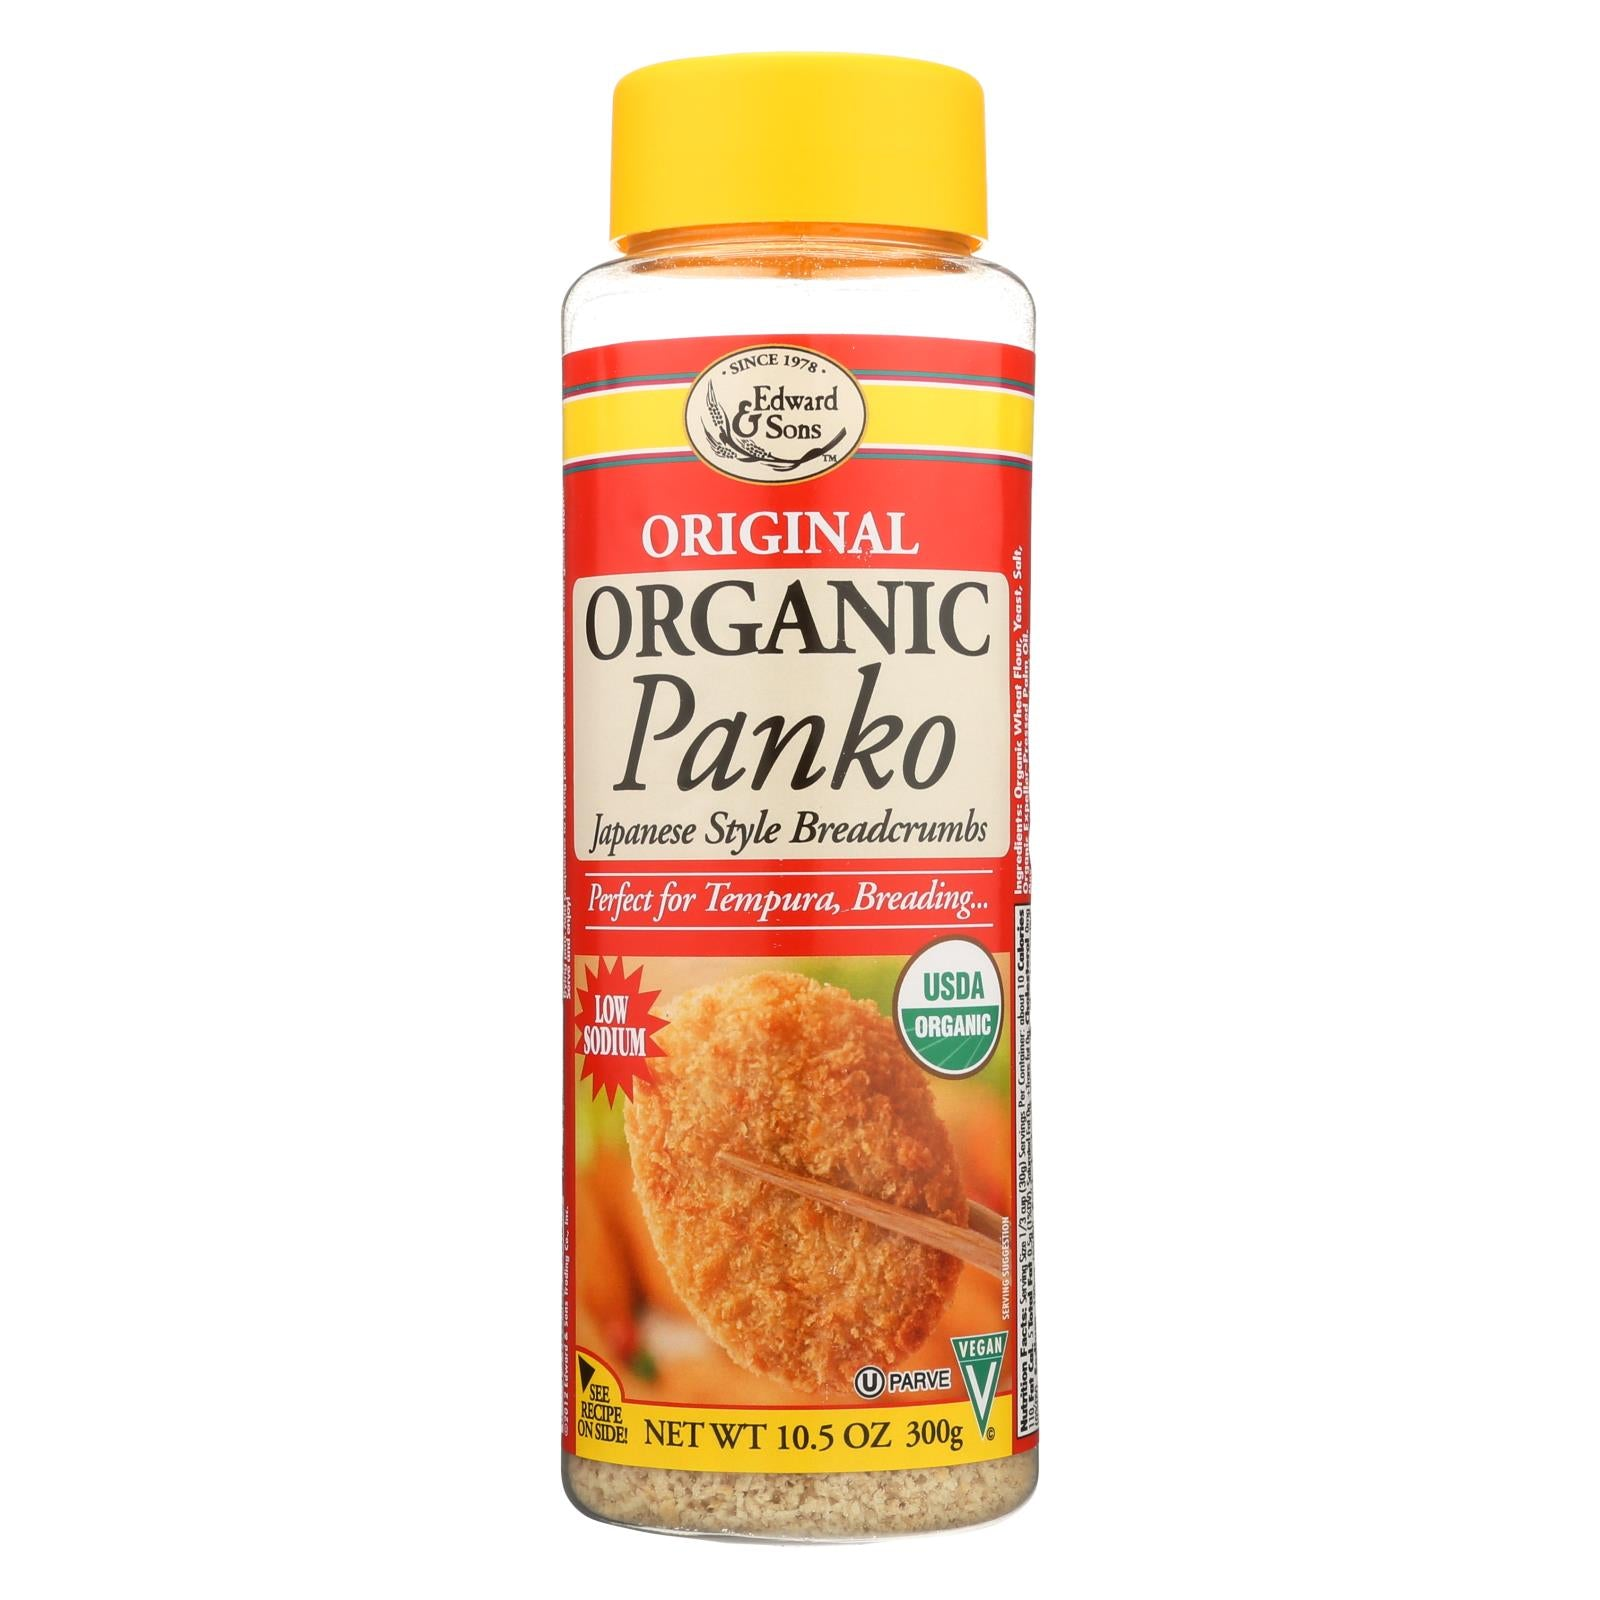 Edward And Sons Organic Panko Breadcrumbs - Case Of 6 - 10.5 Oz. HG0731992